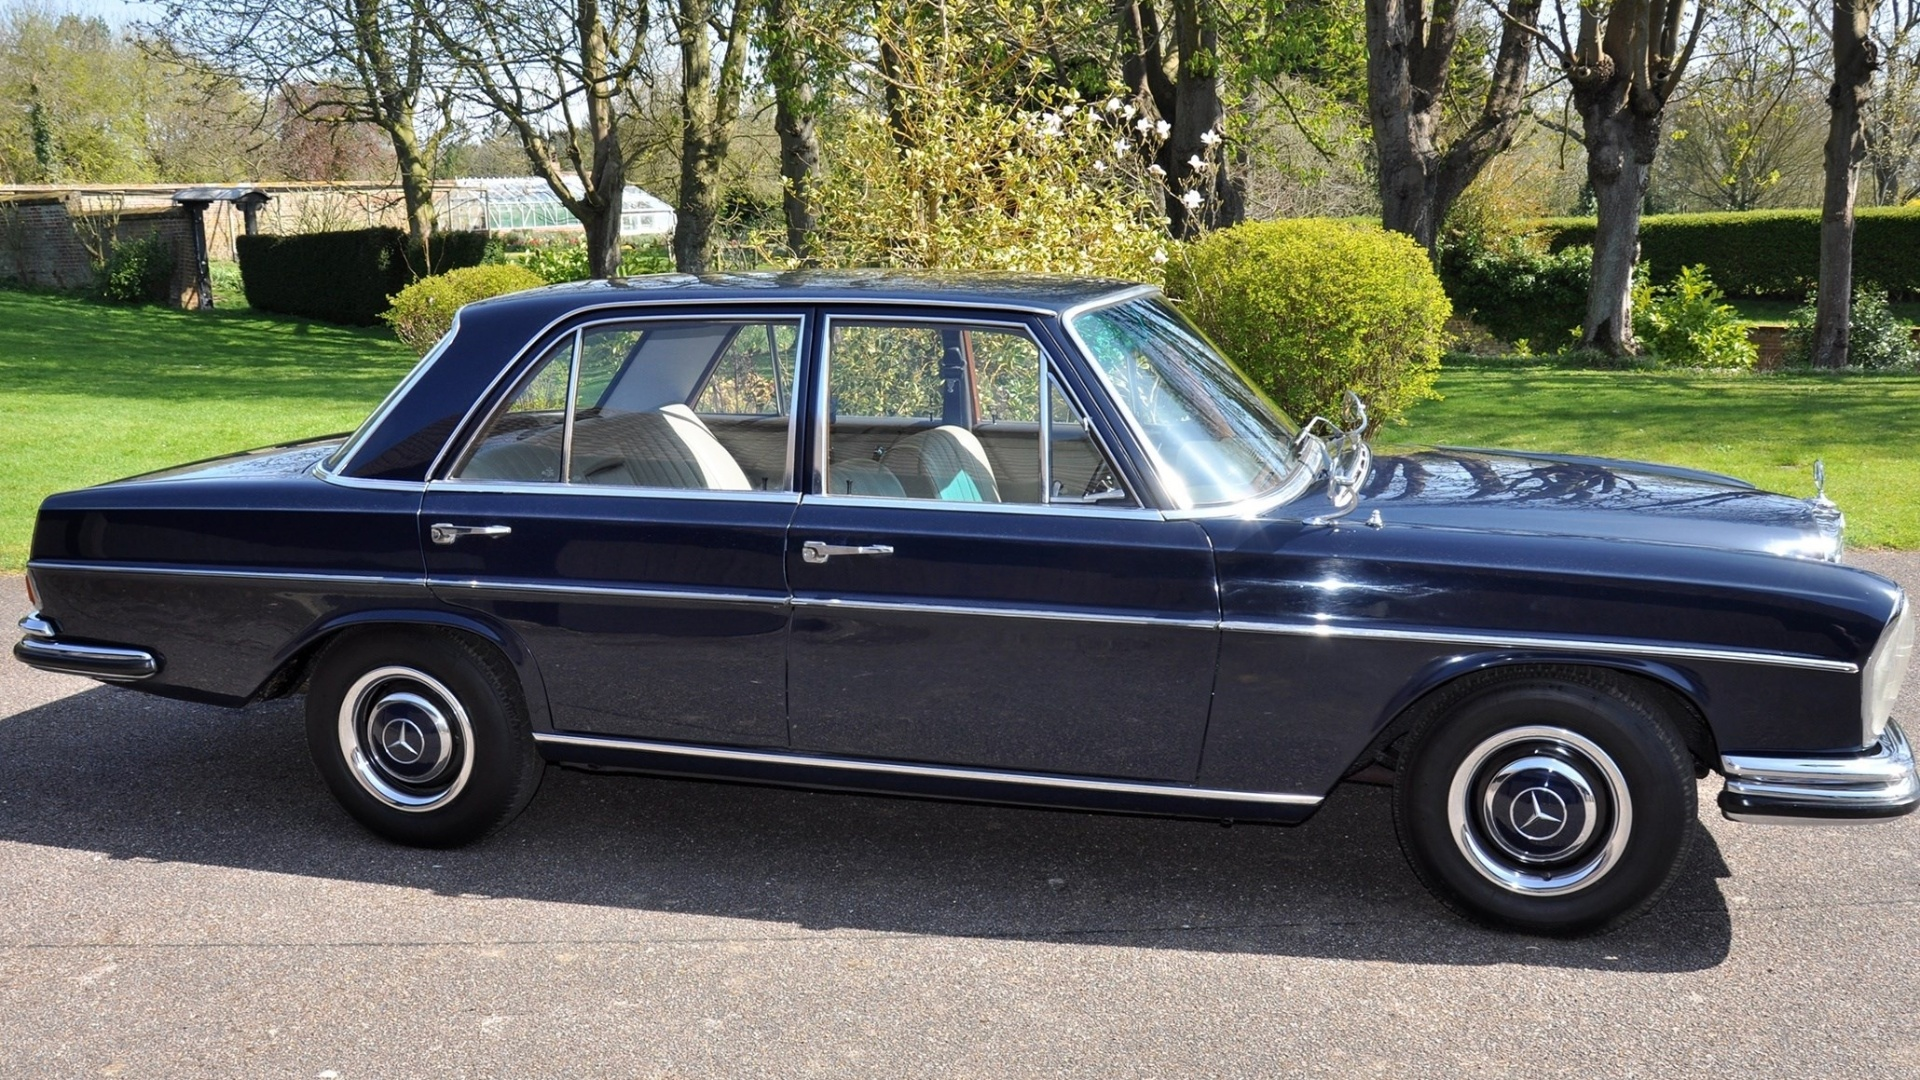 Mercedes-Benz 250 S do baixista Bill Wyman, que será leiloada